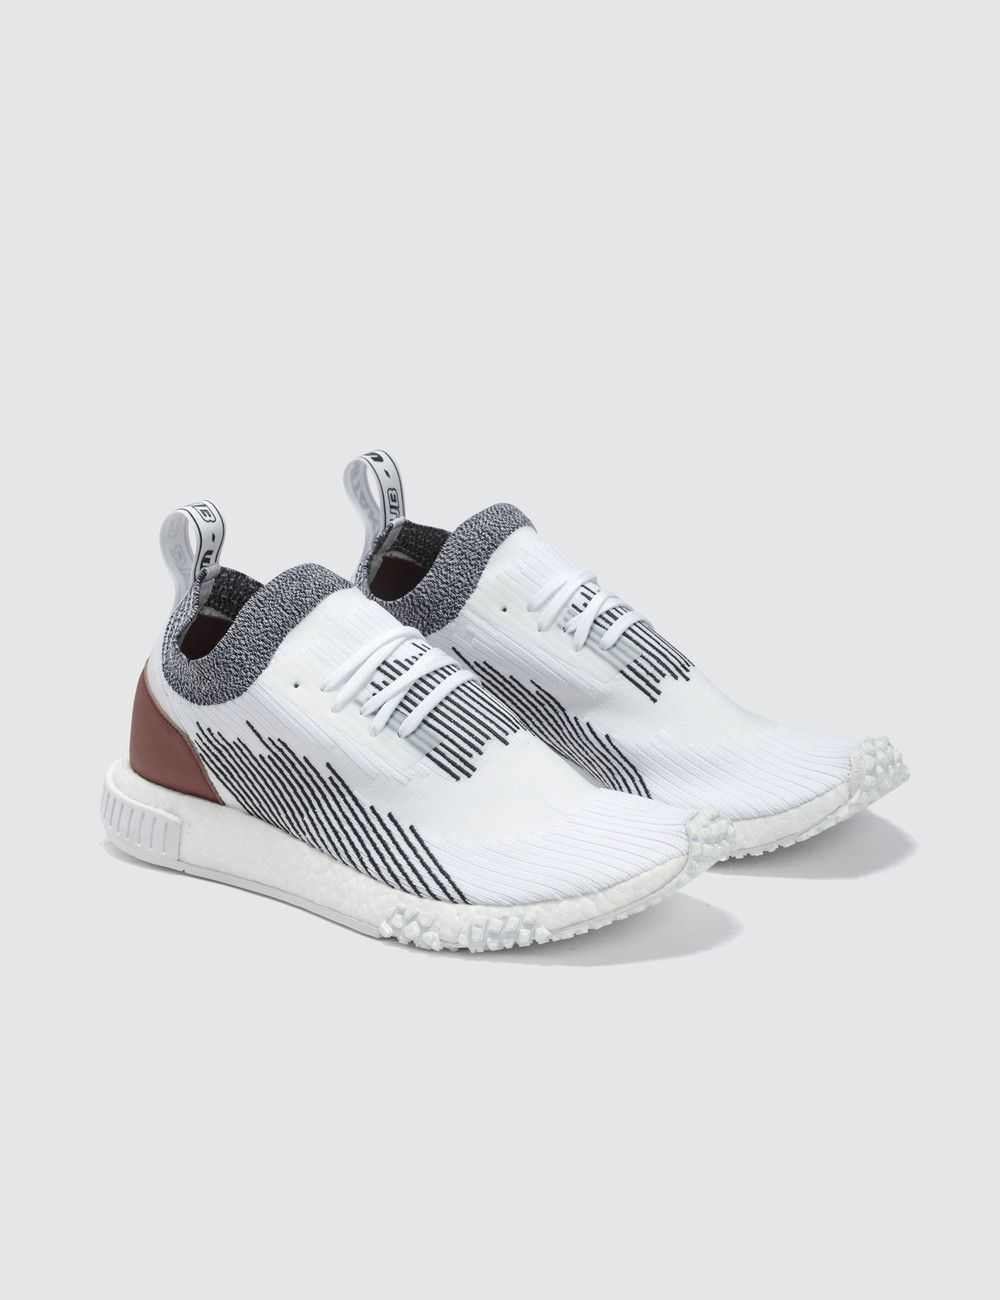 newest 0d5c7 60cb9 Adidas Originals NMD Racer